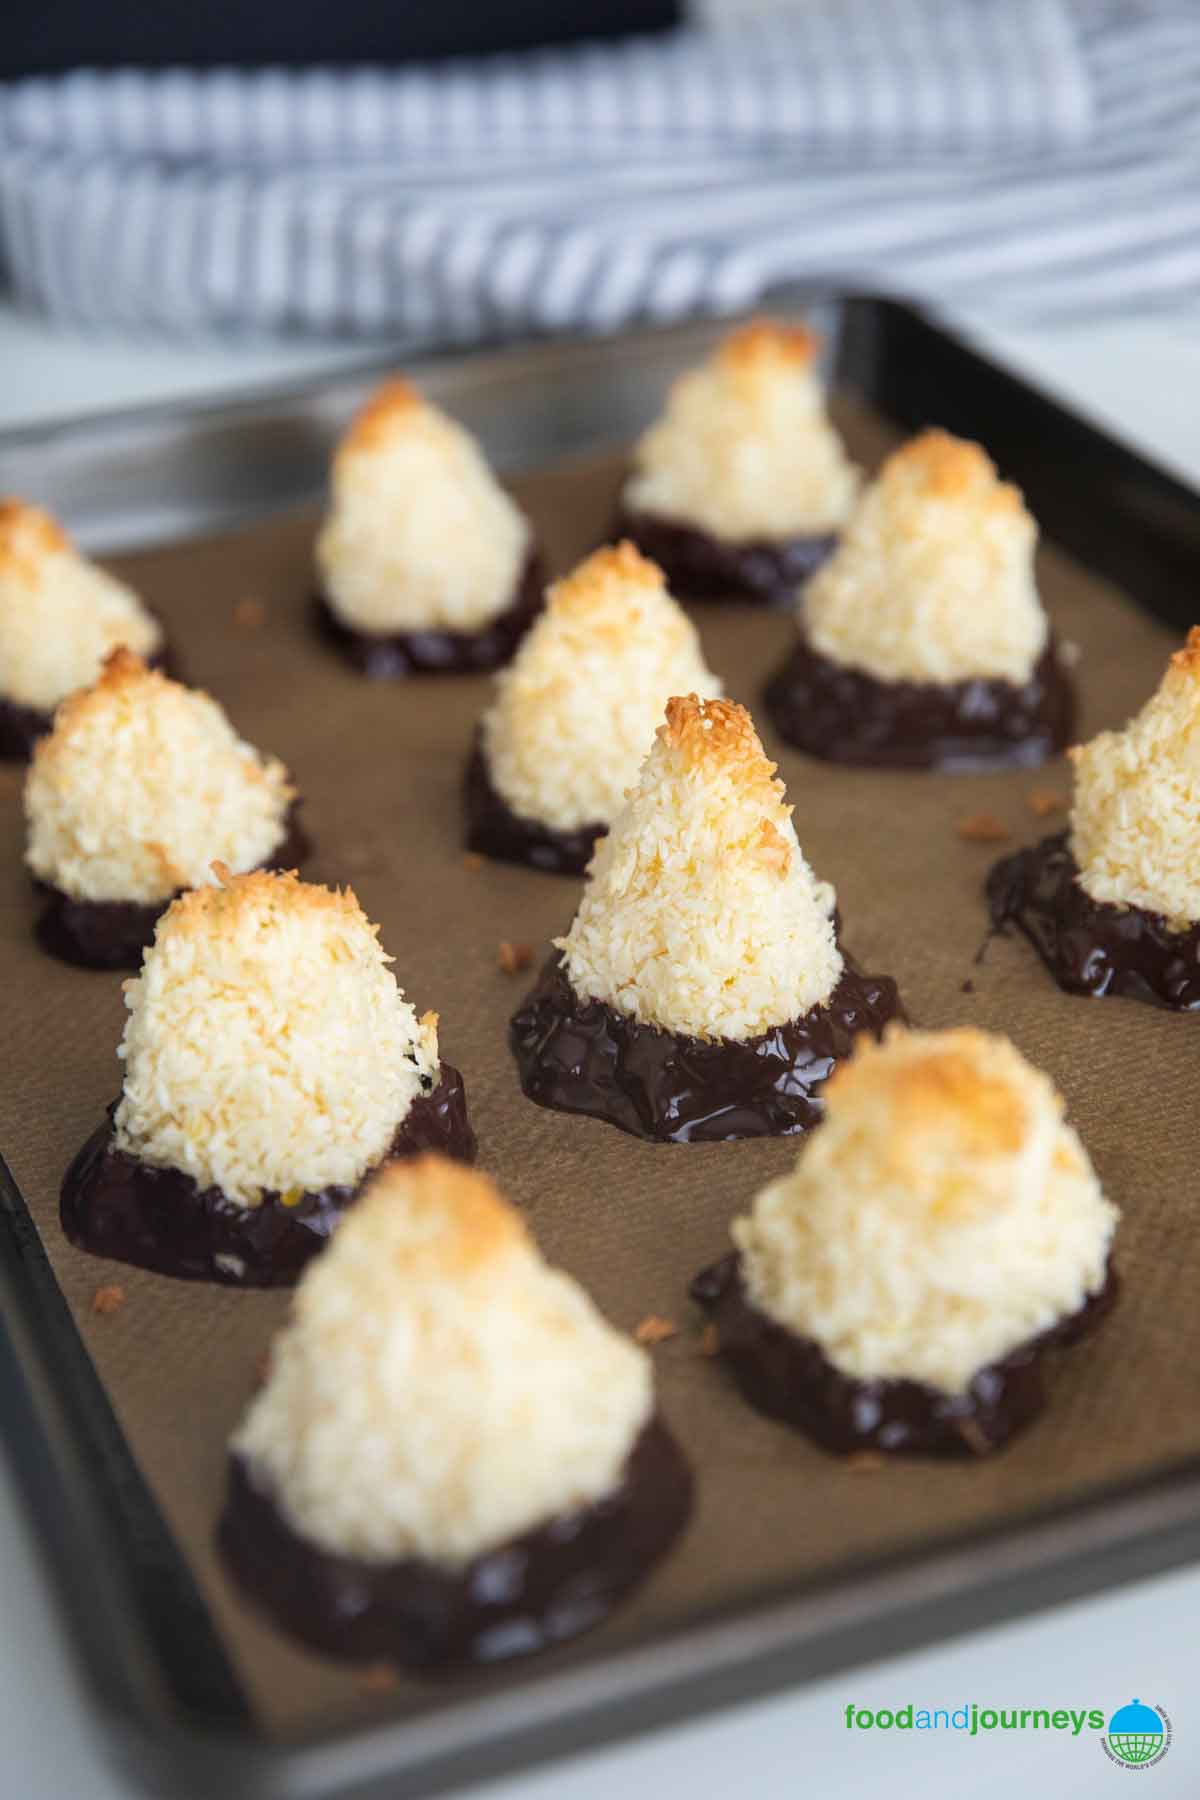 Swedish Coconut Bites in a tray, fresh from the oven.